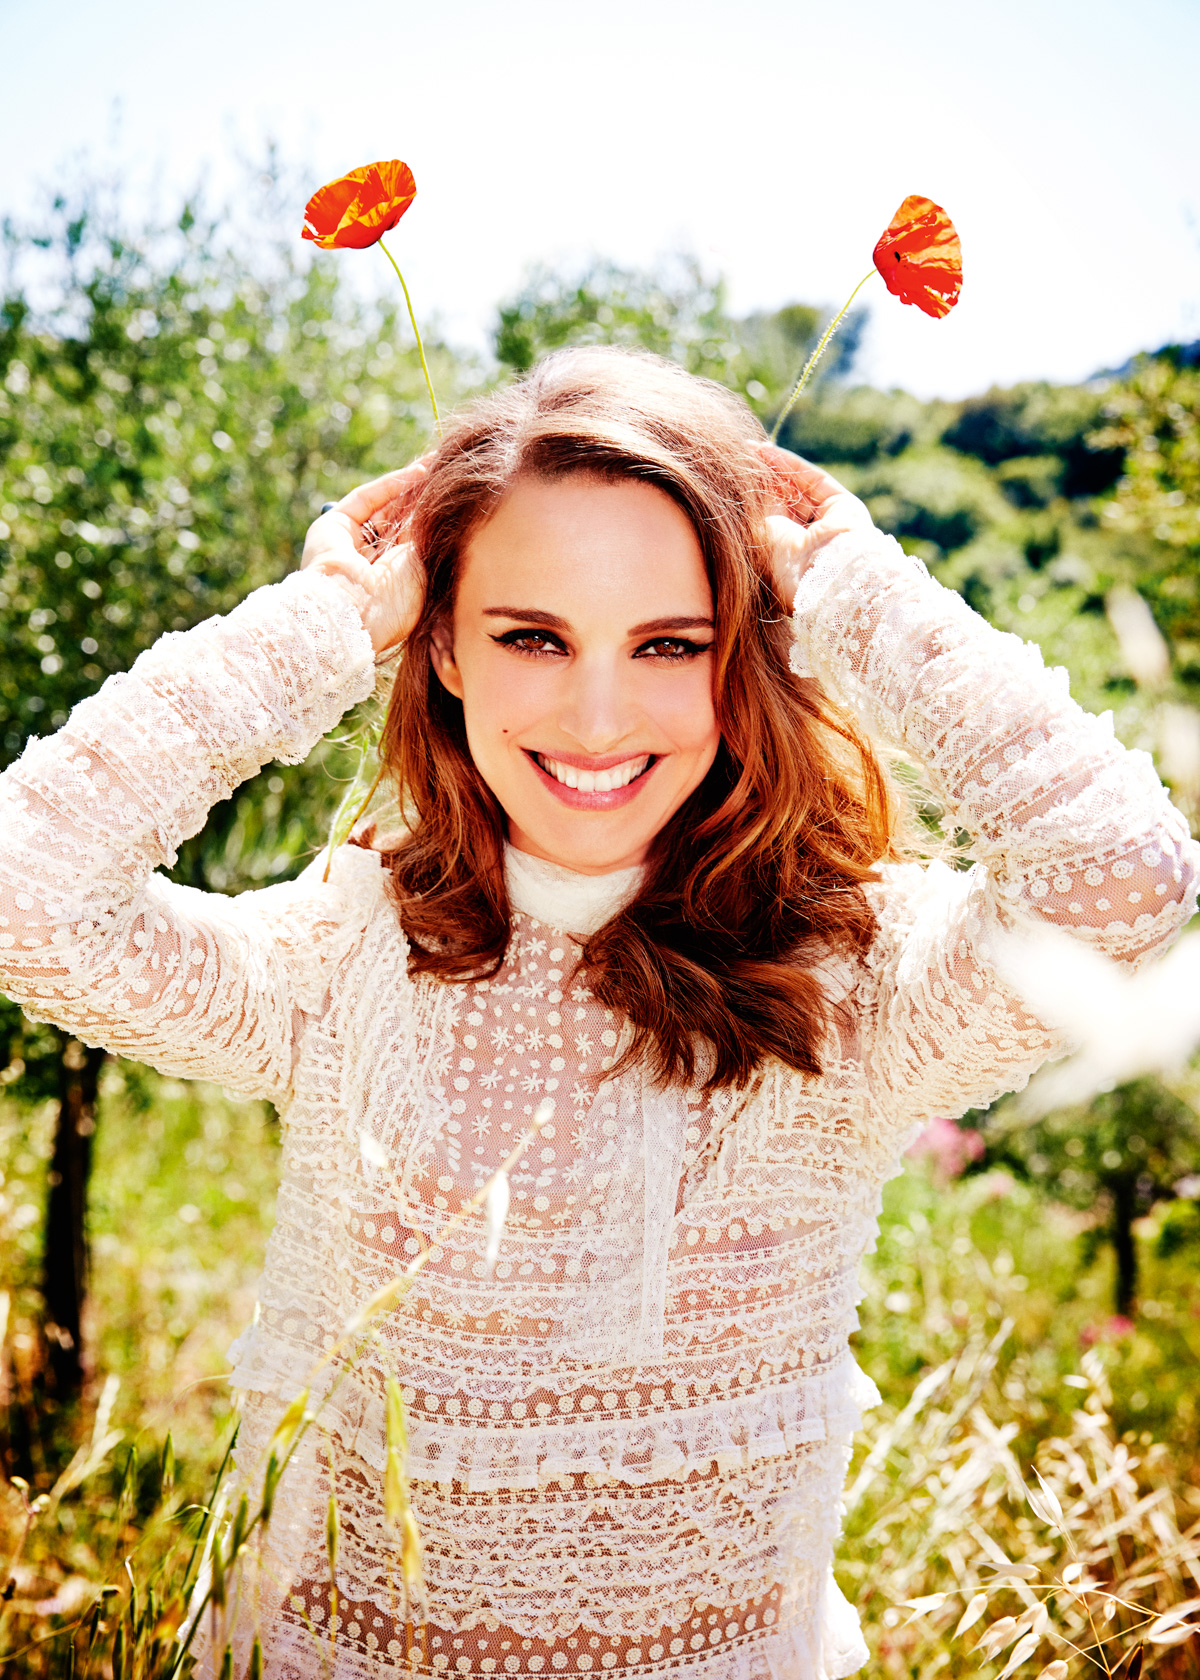 House Of Usher Natalie Portman by Ellen Von Unwerth 04